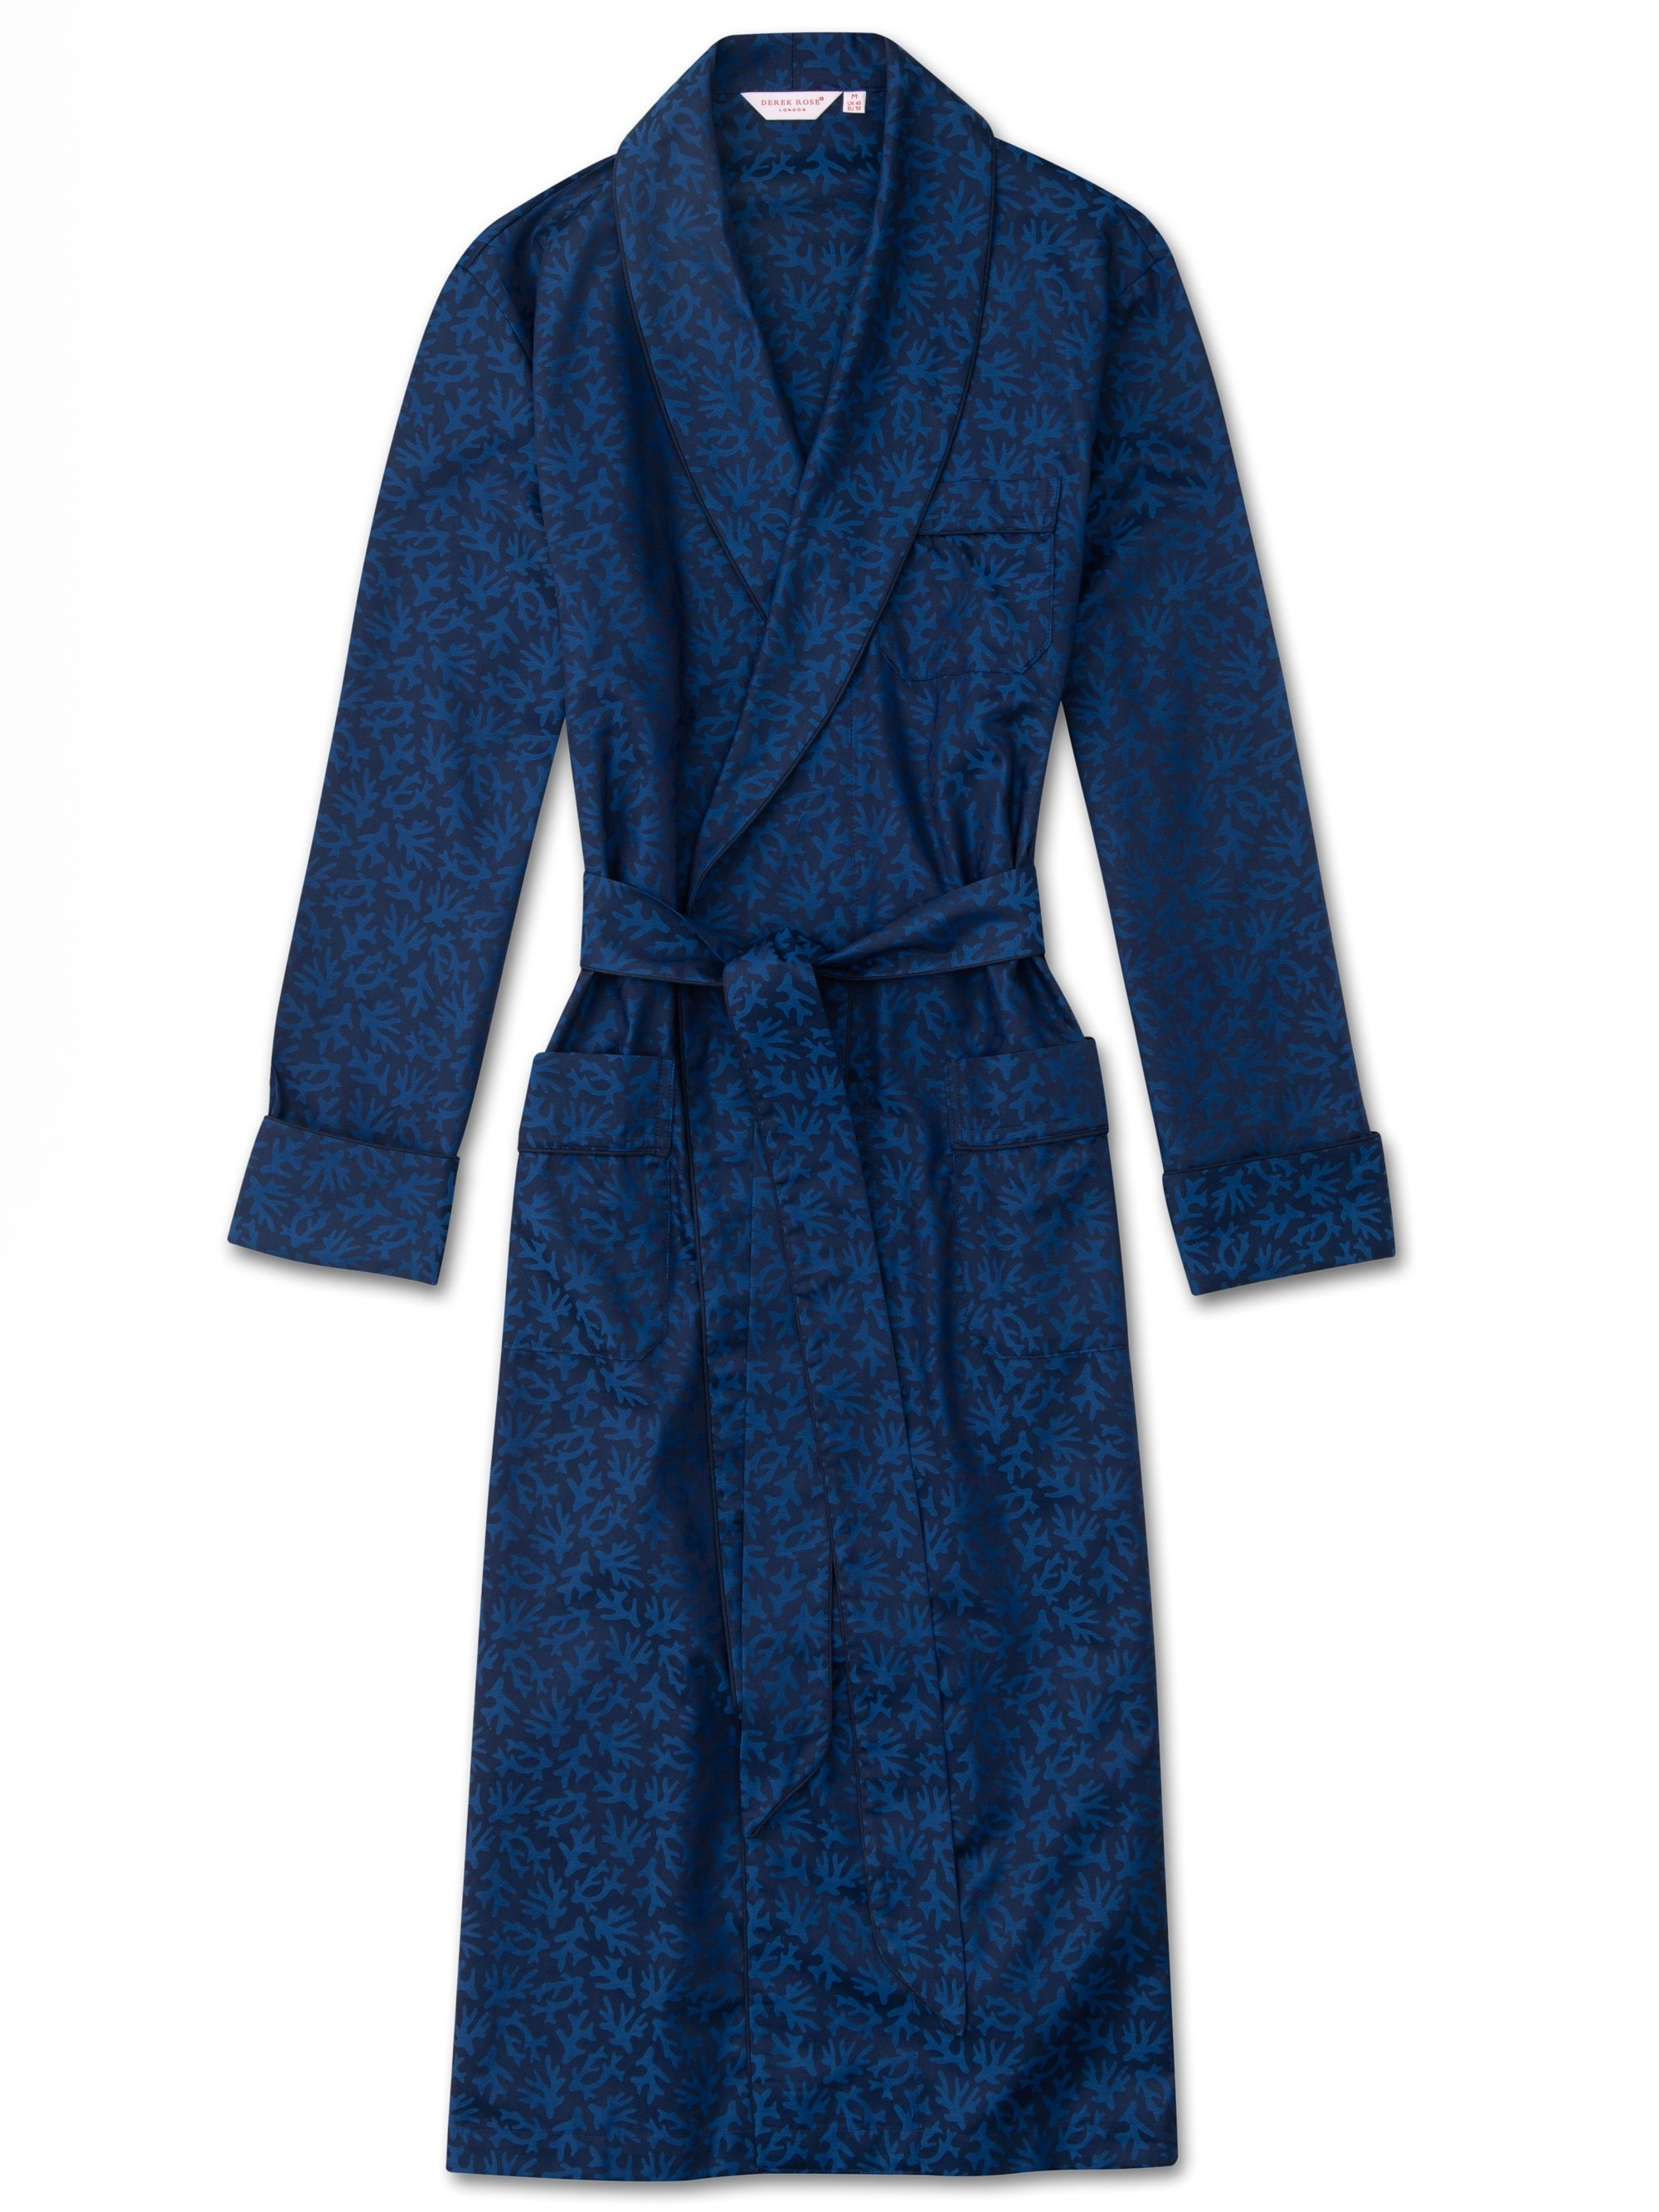 Men's Piped Dressing Gown Paris 16 Cotton Jacquard Navy